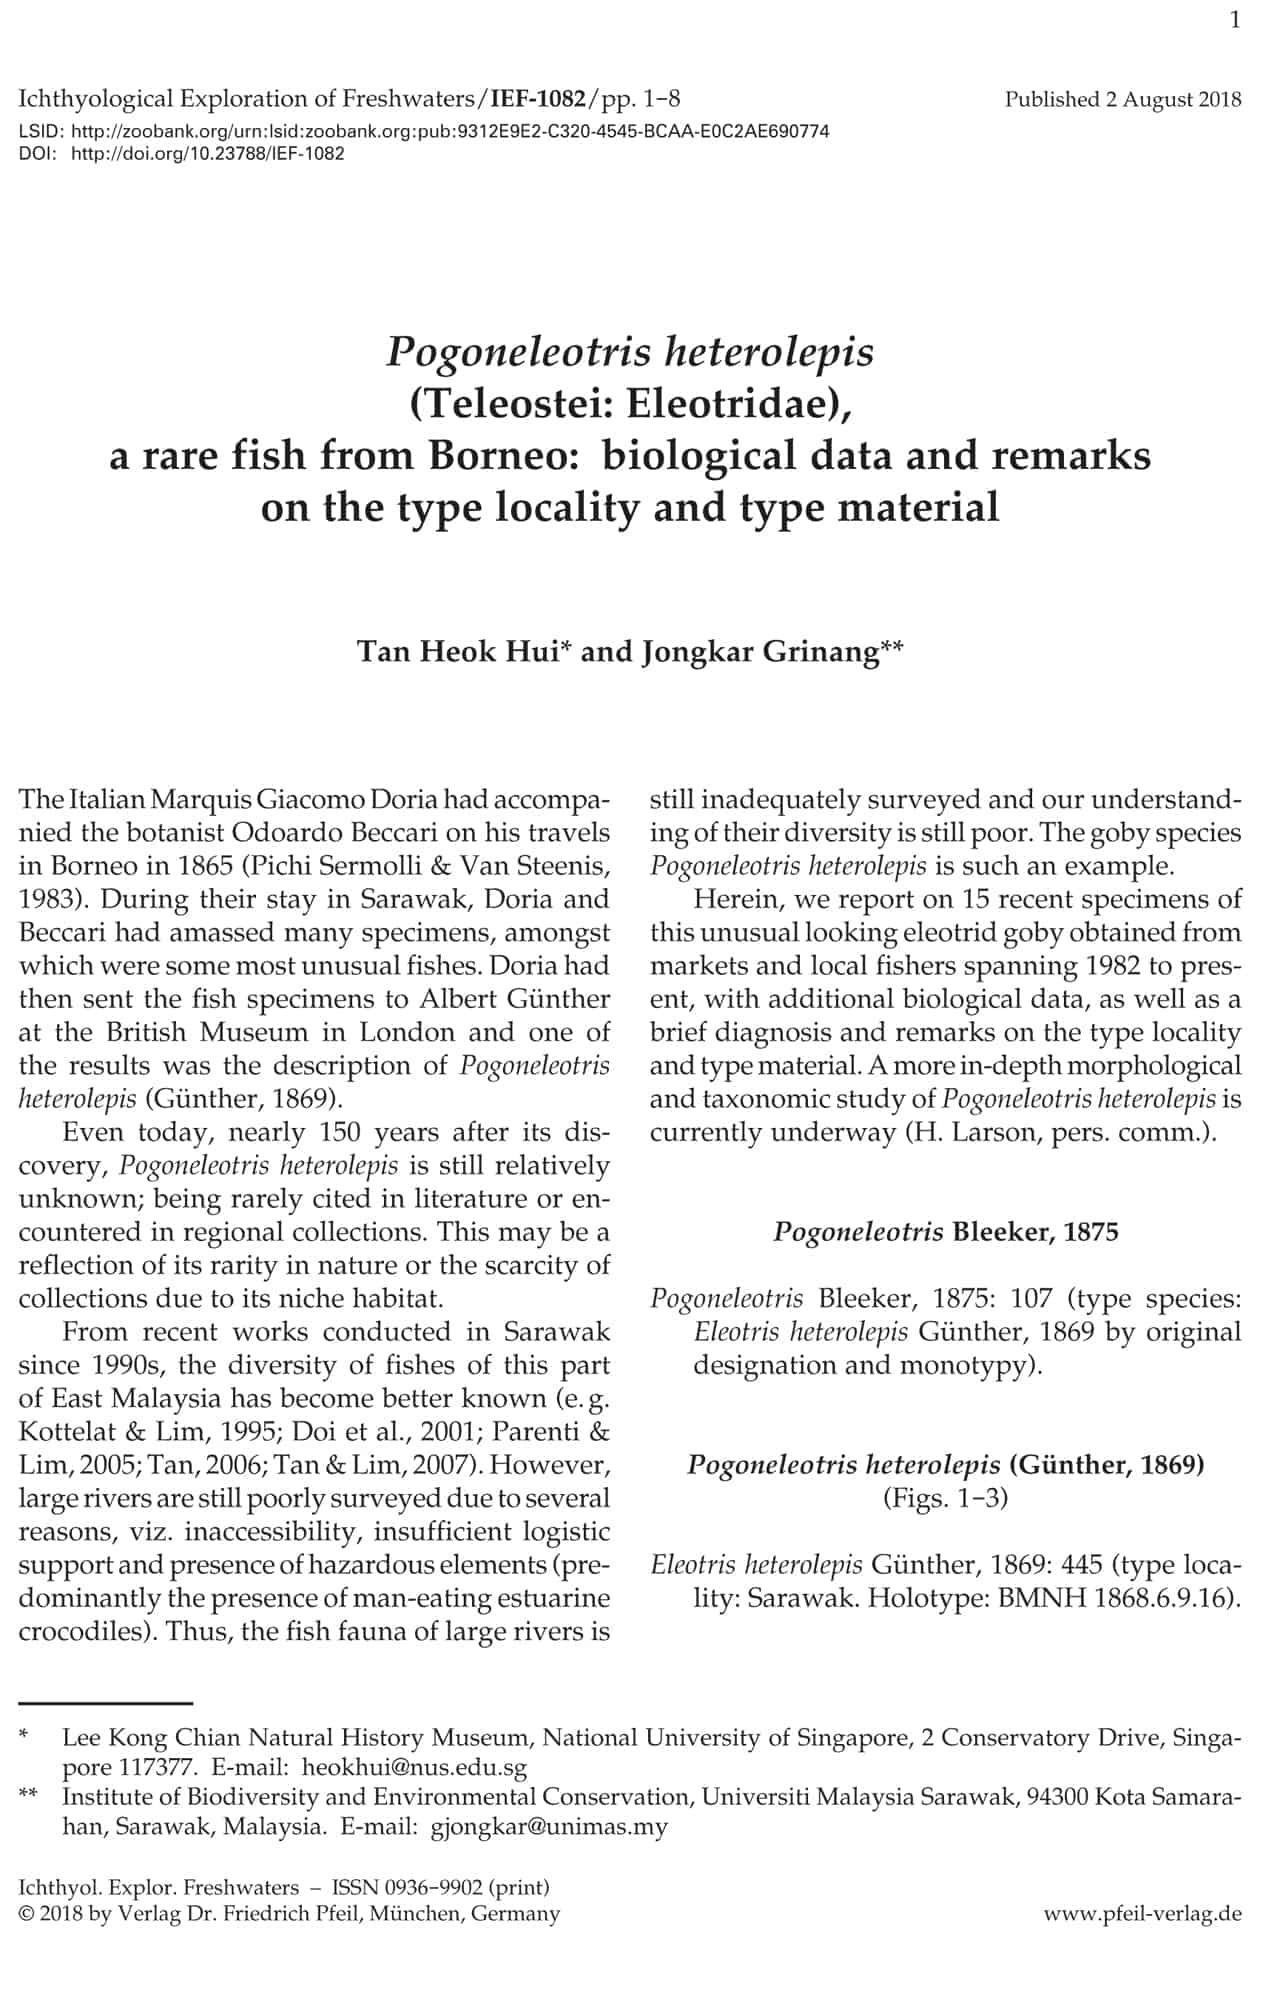 Pogoneleotris heterolepis (Teleostei: Eleotridae), a rare fish from Borneo: biological data and remarks on the type locality and type material